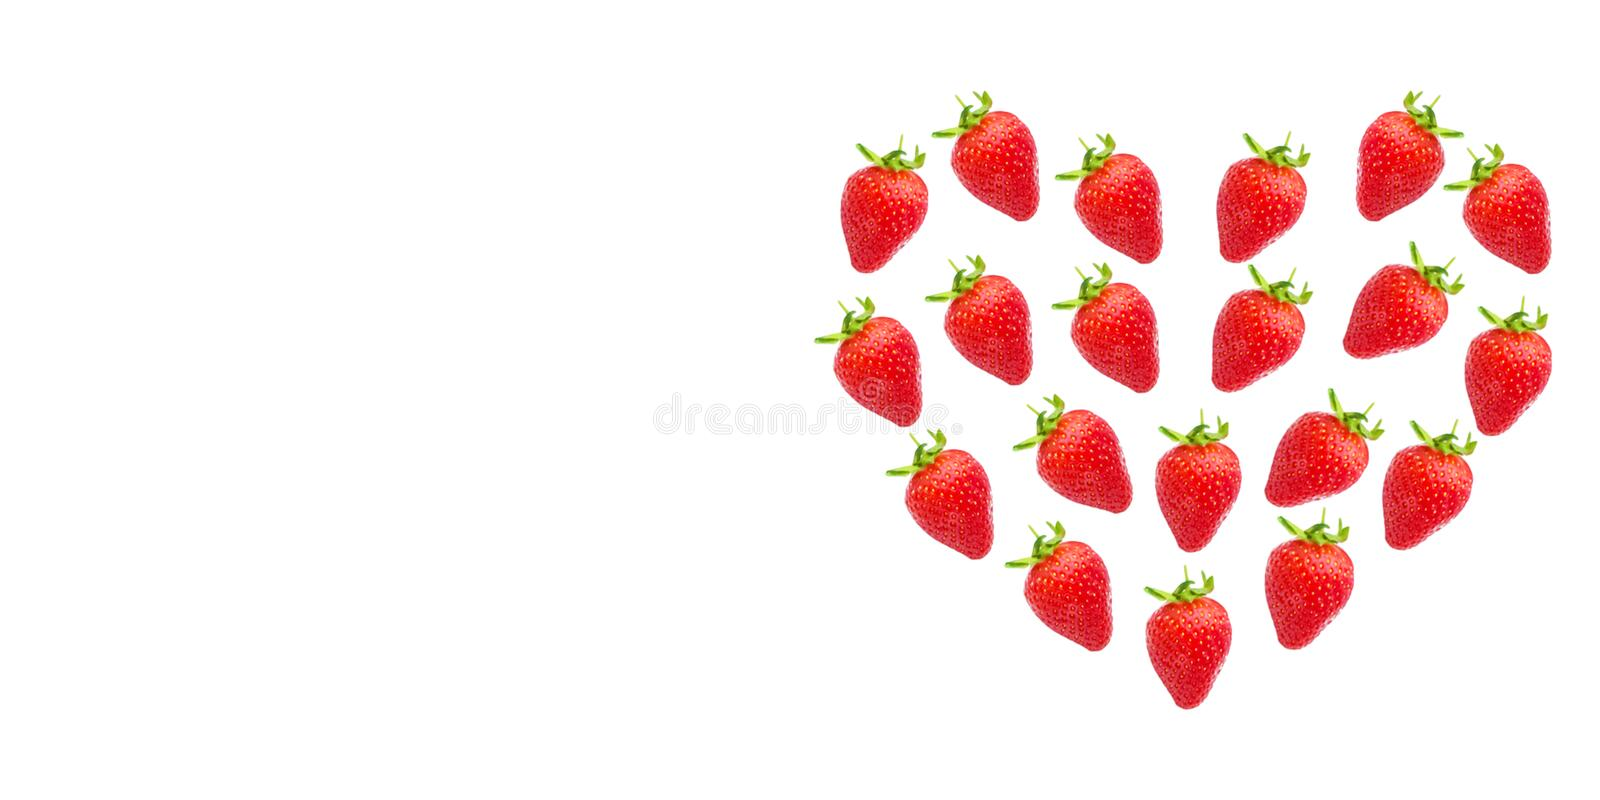 ripe fresh strawberries in the shape of a heart stock images